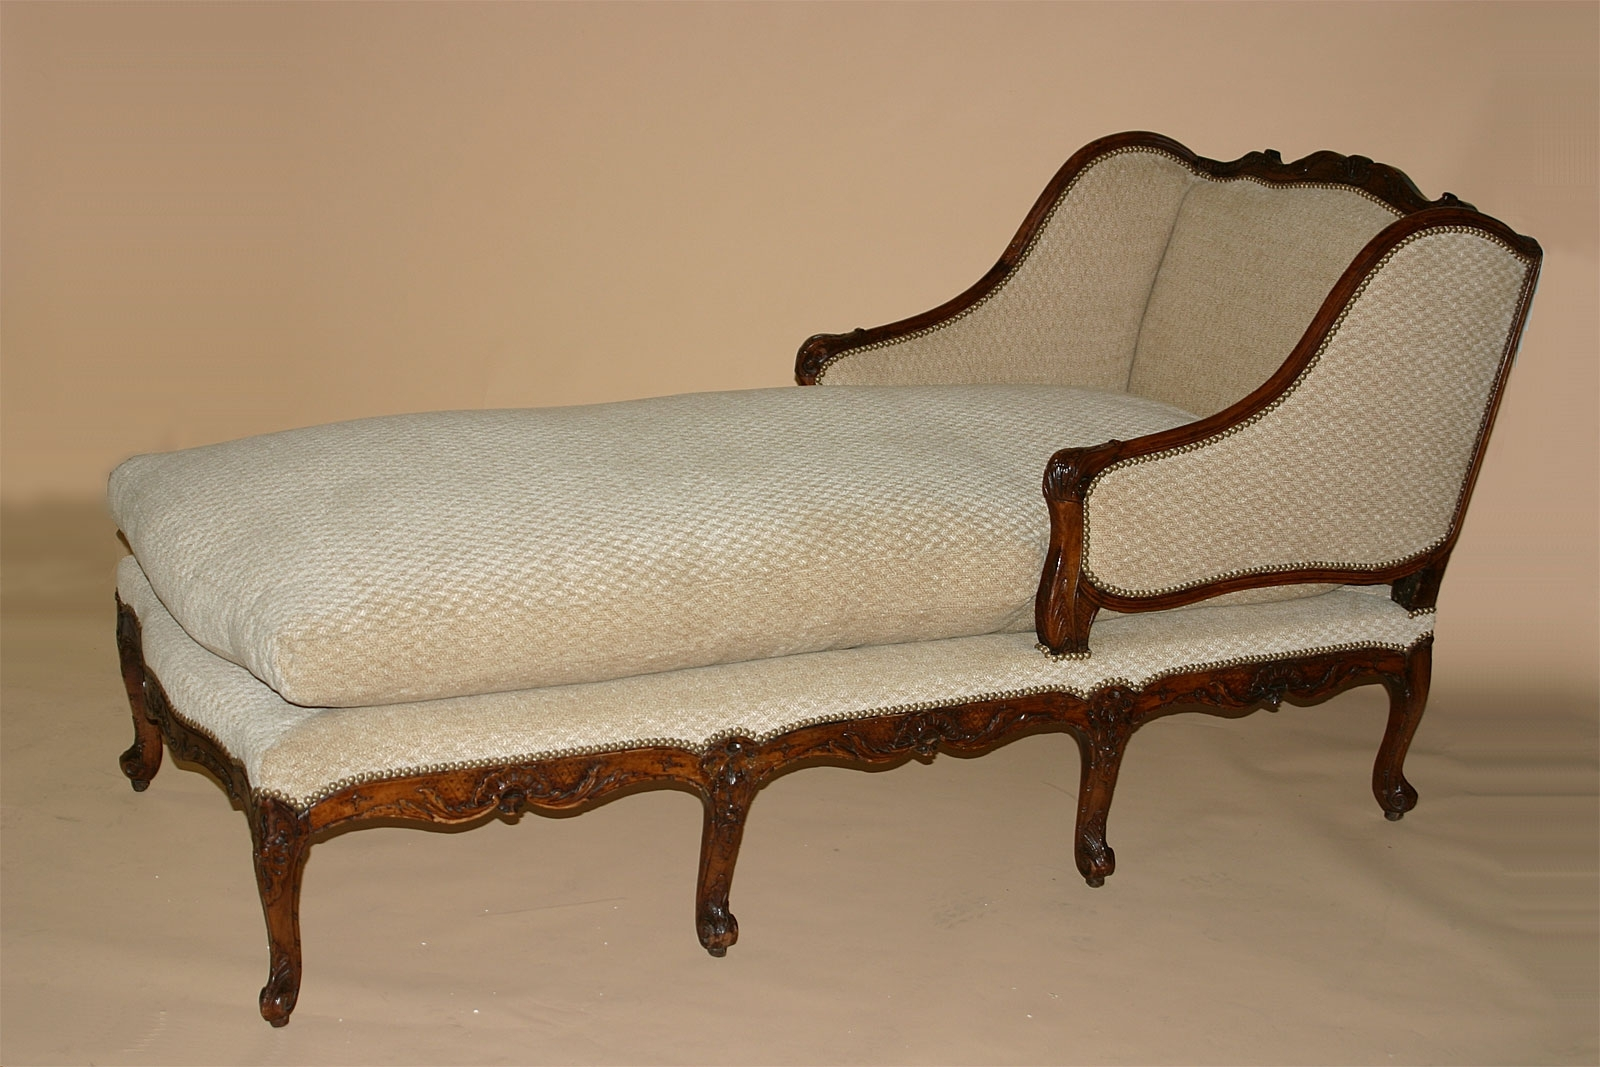 Best And Newest French Chaises Regarding Louis Xv Period Chaise Longue (View 2 of 15)